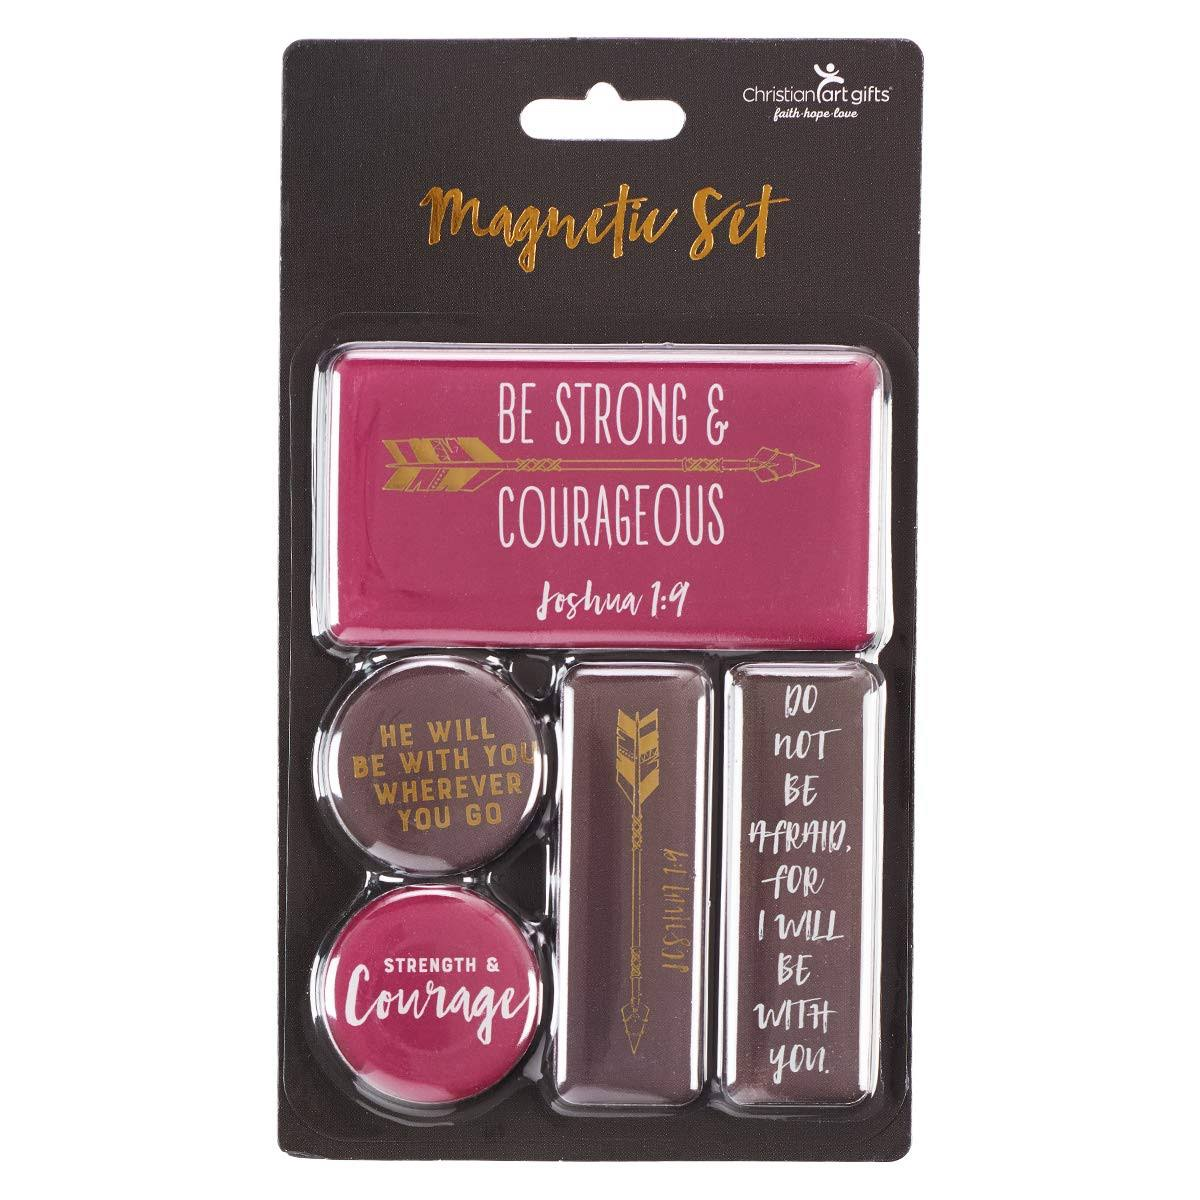 Magnet Set Be Strong & Courageous